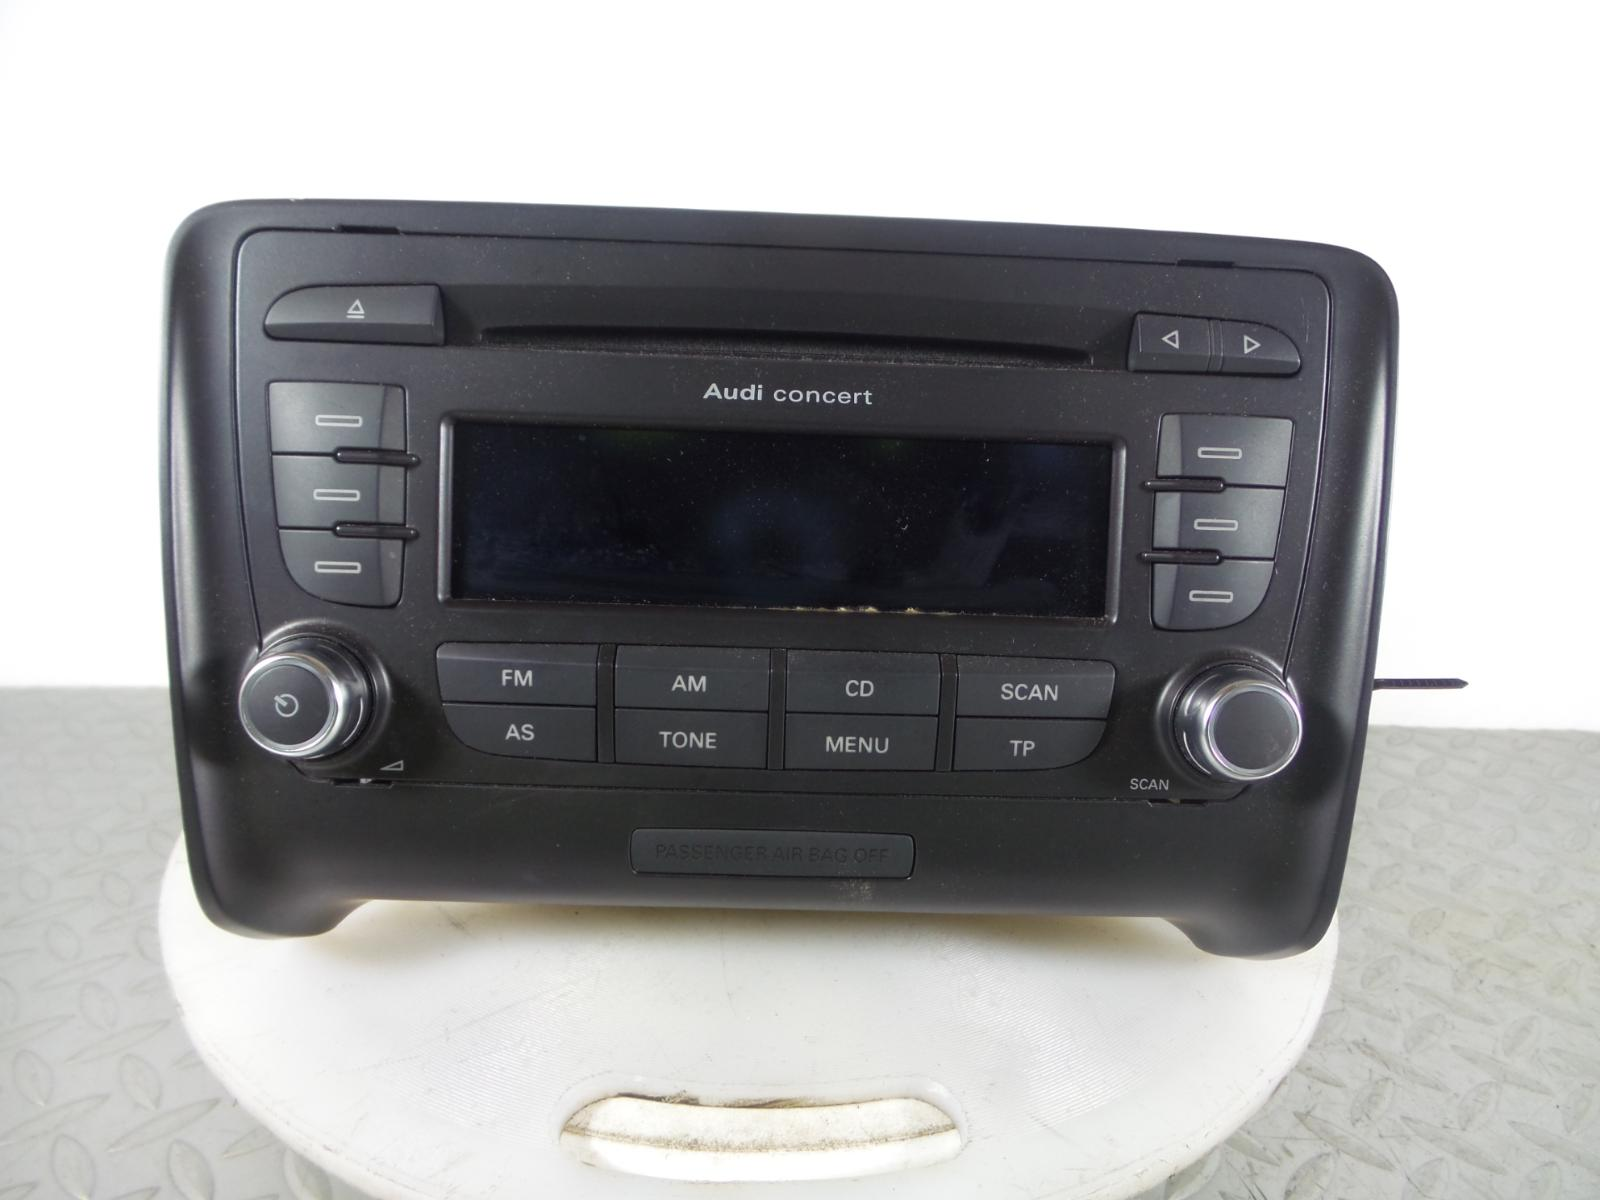 2007 audi tt 8j 2006 2014 concert ii cd player radio code. Black Bedroom Furniture Sets. Home Design Ideas